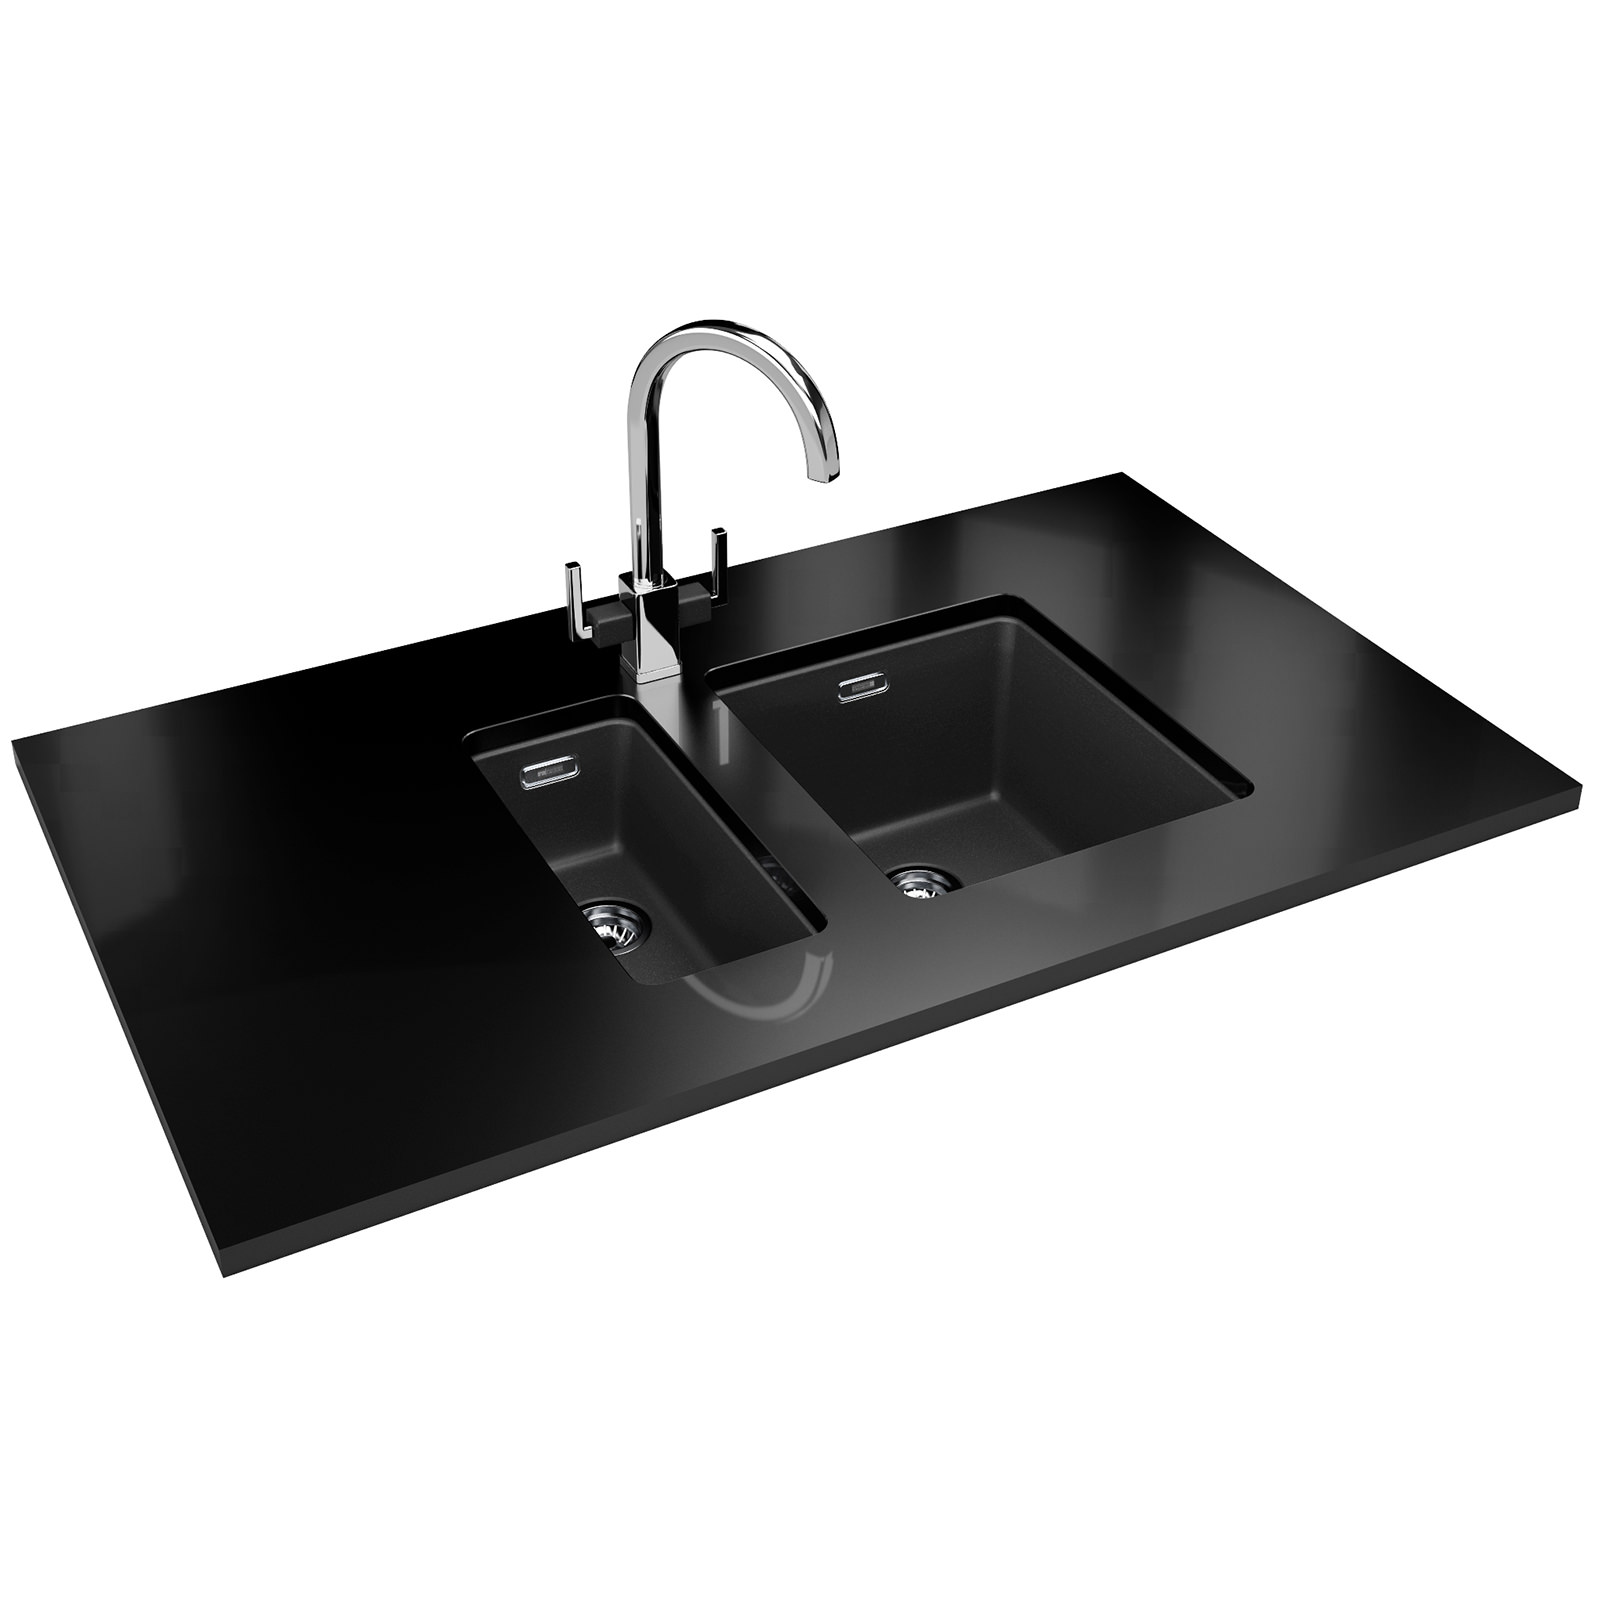 franke kubus dp kbg 110 16 kbg 110 34 fragranite onyx sink and tap. Black Bedroom Furniture Sets. Home Design Ideas